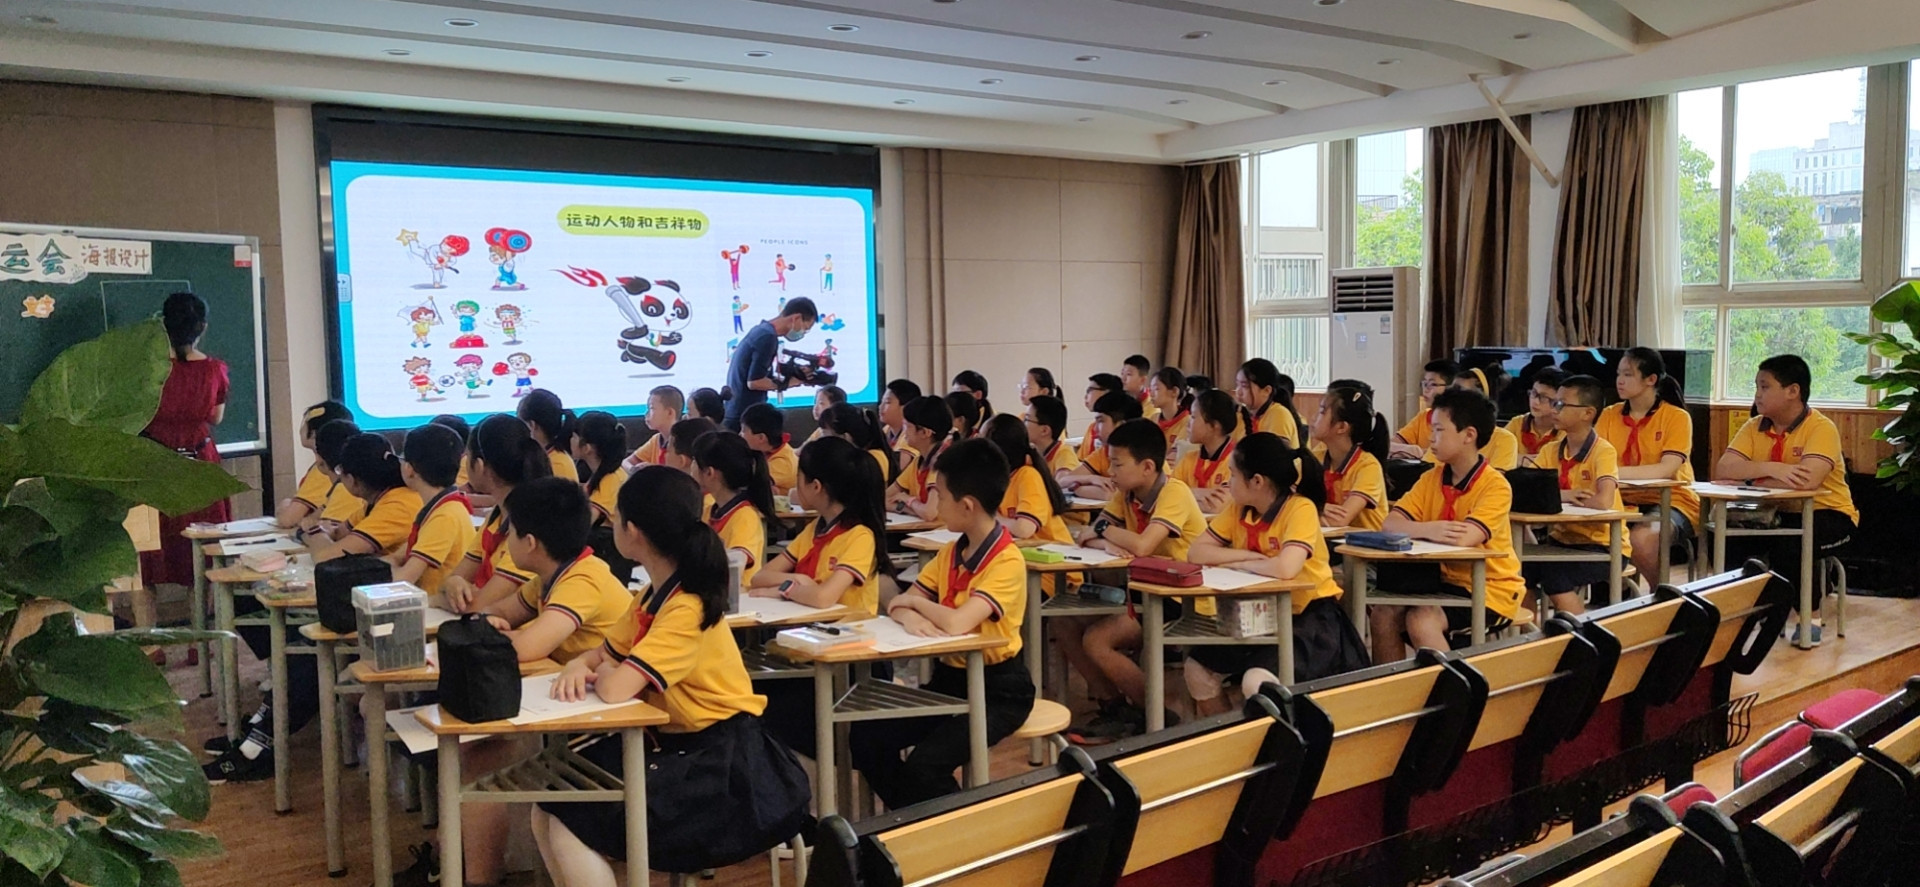 Chengdu 2021 launch painting initiative for children